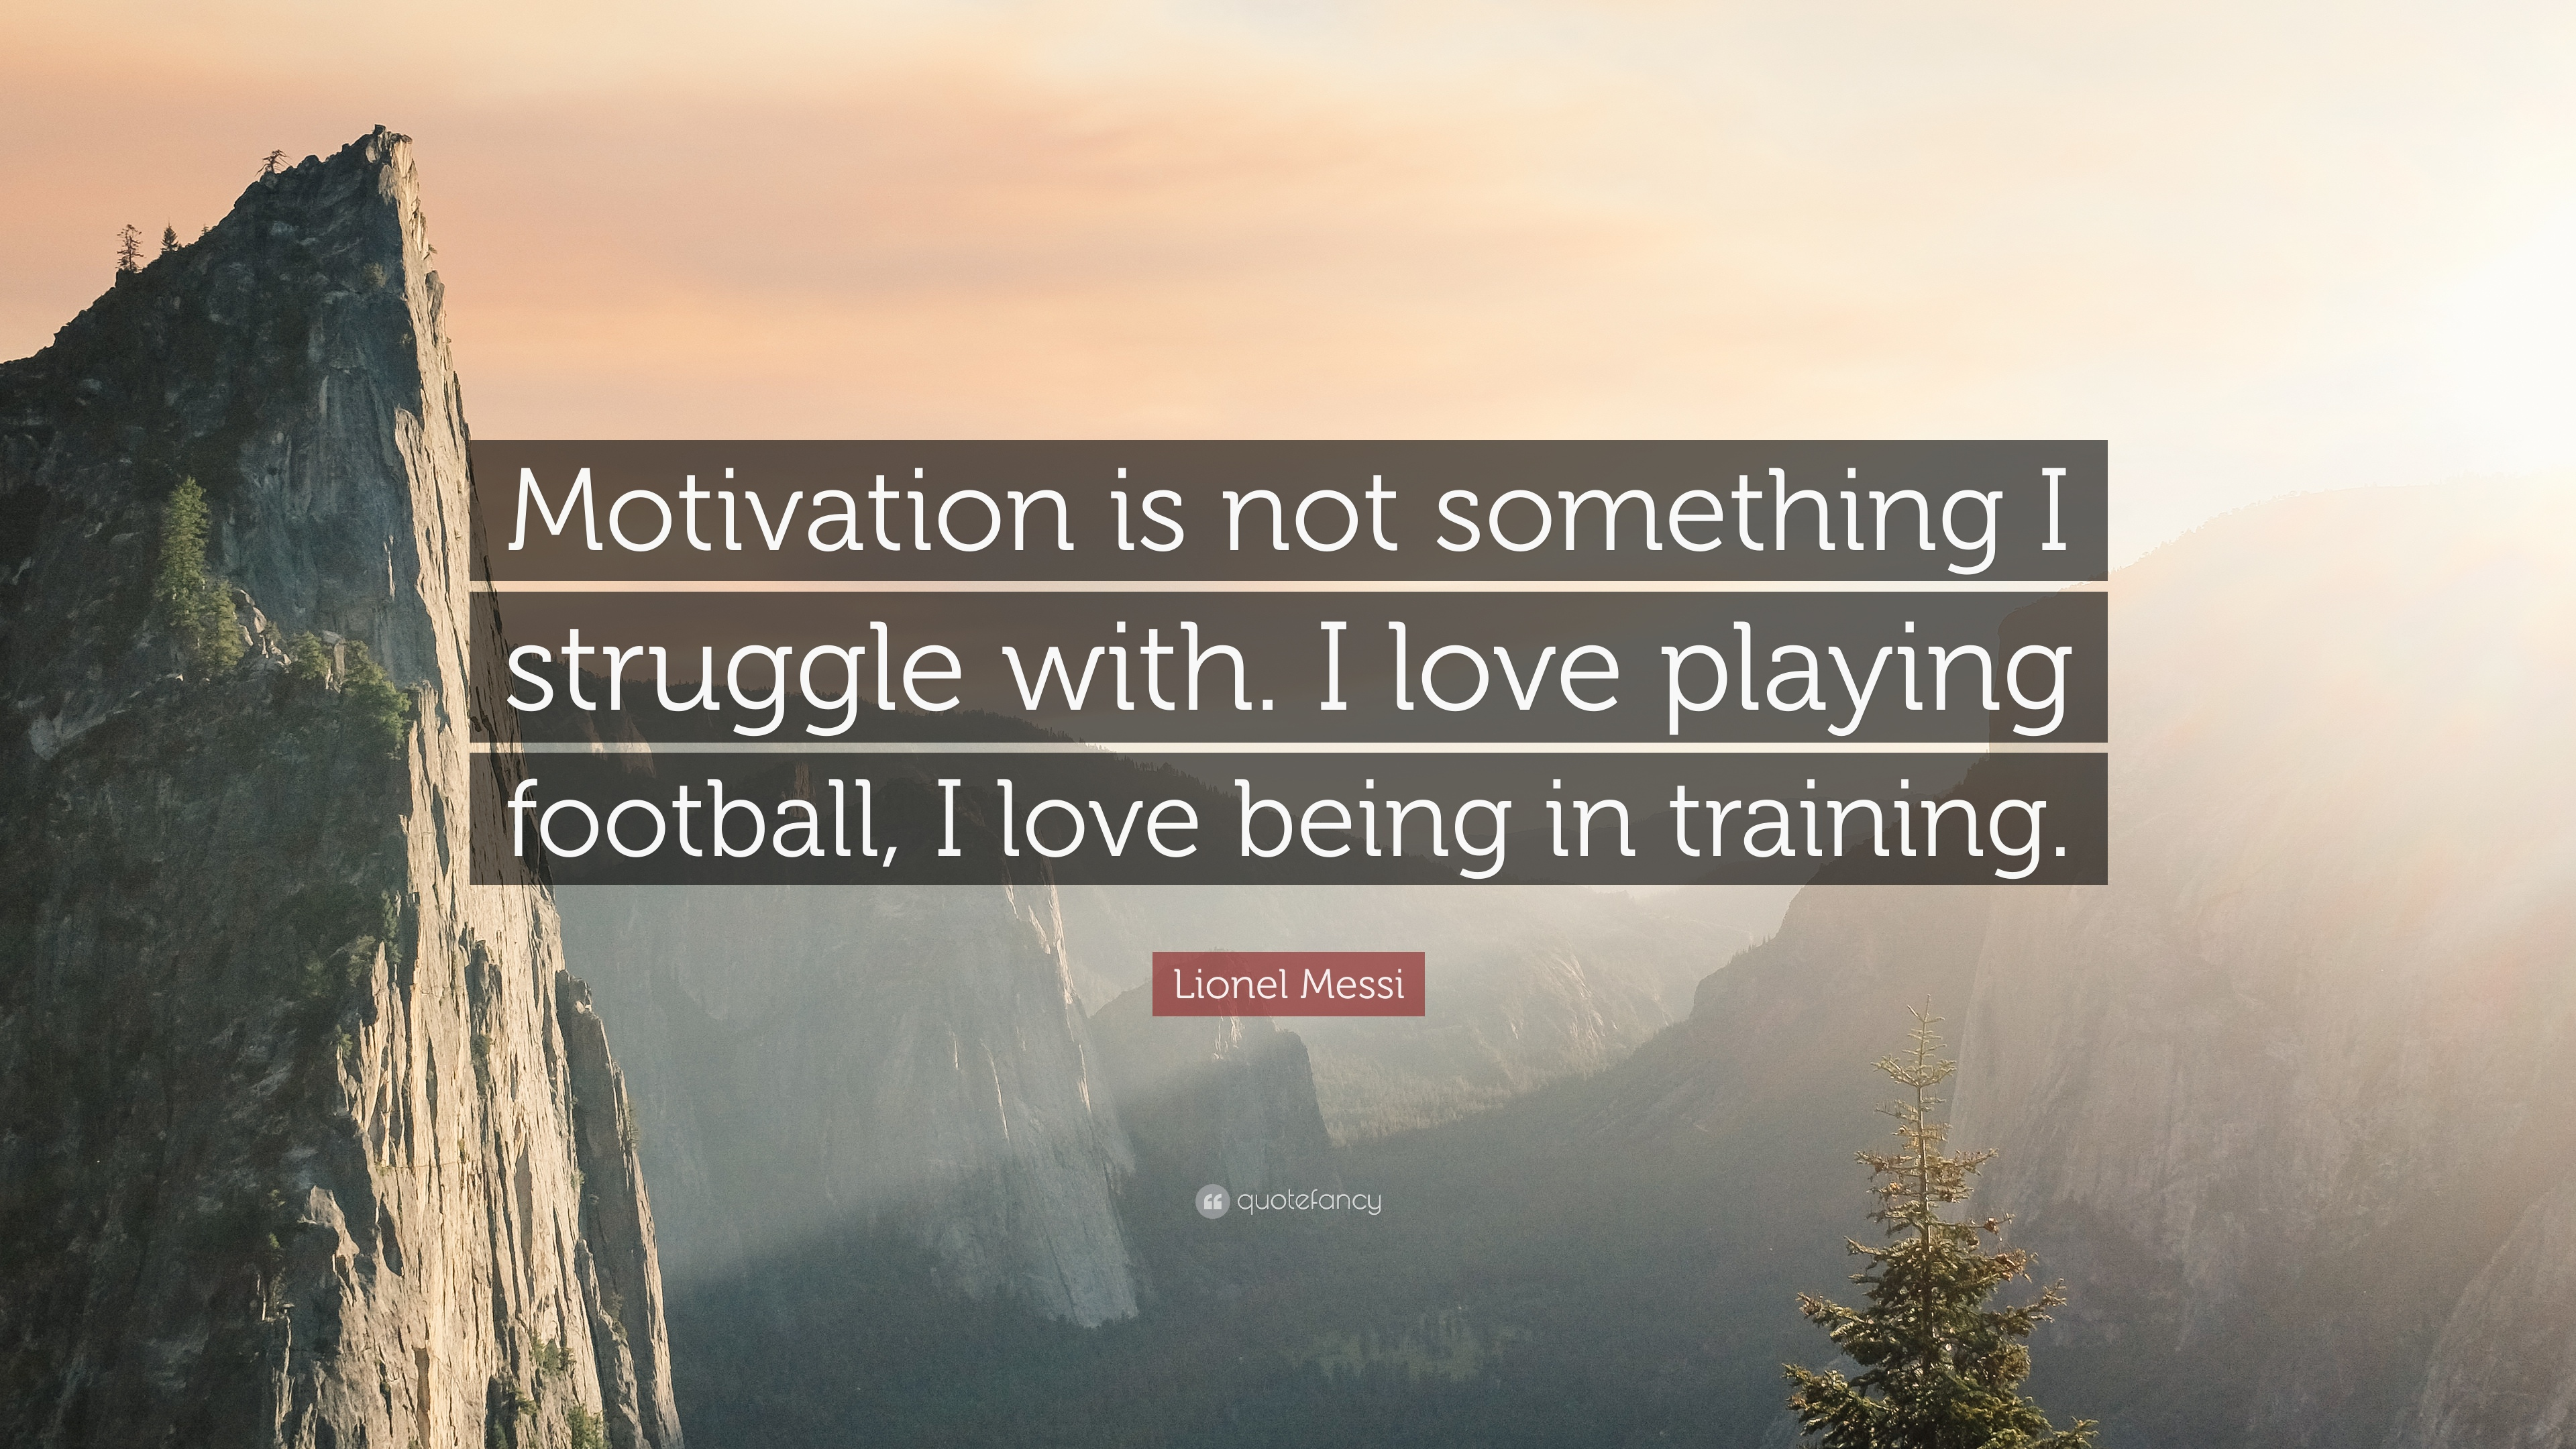 Football Training Motivational Quotes: Football Quotes (40 Wallpapers)